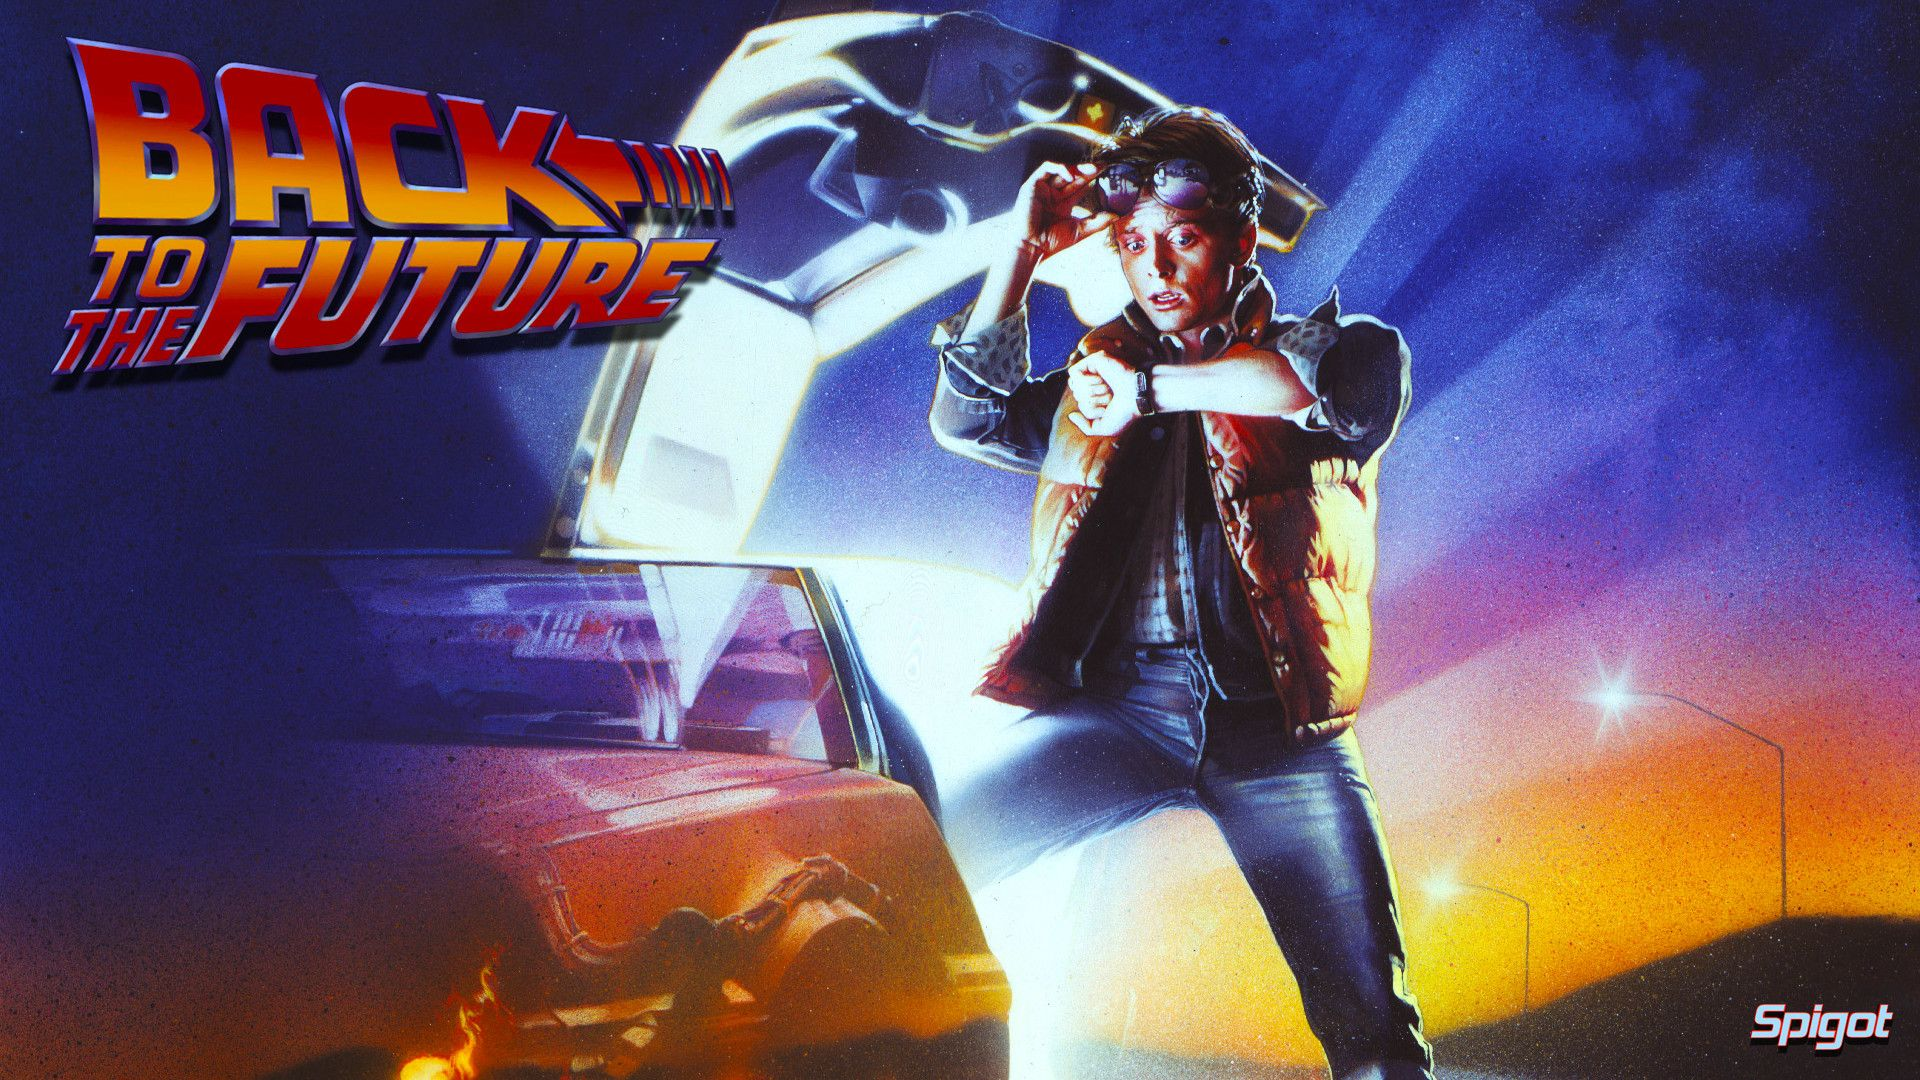 back to the future movie poster hd